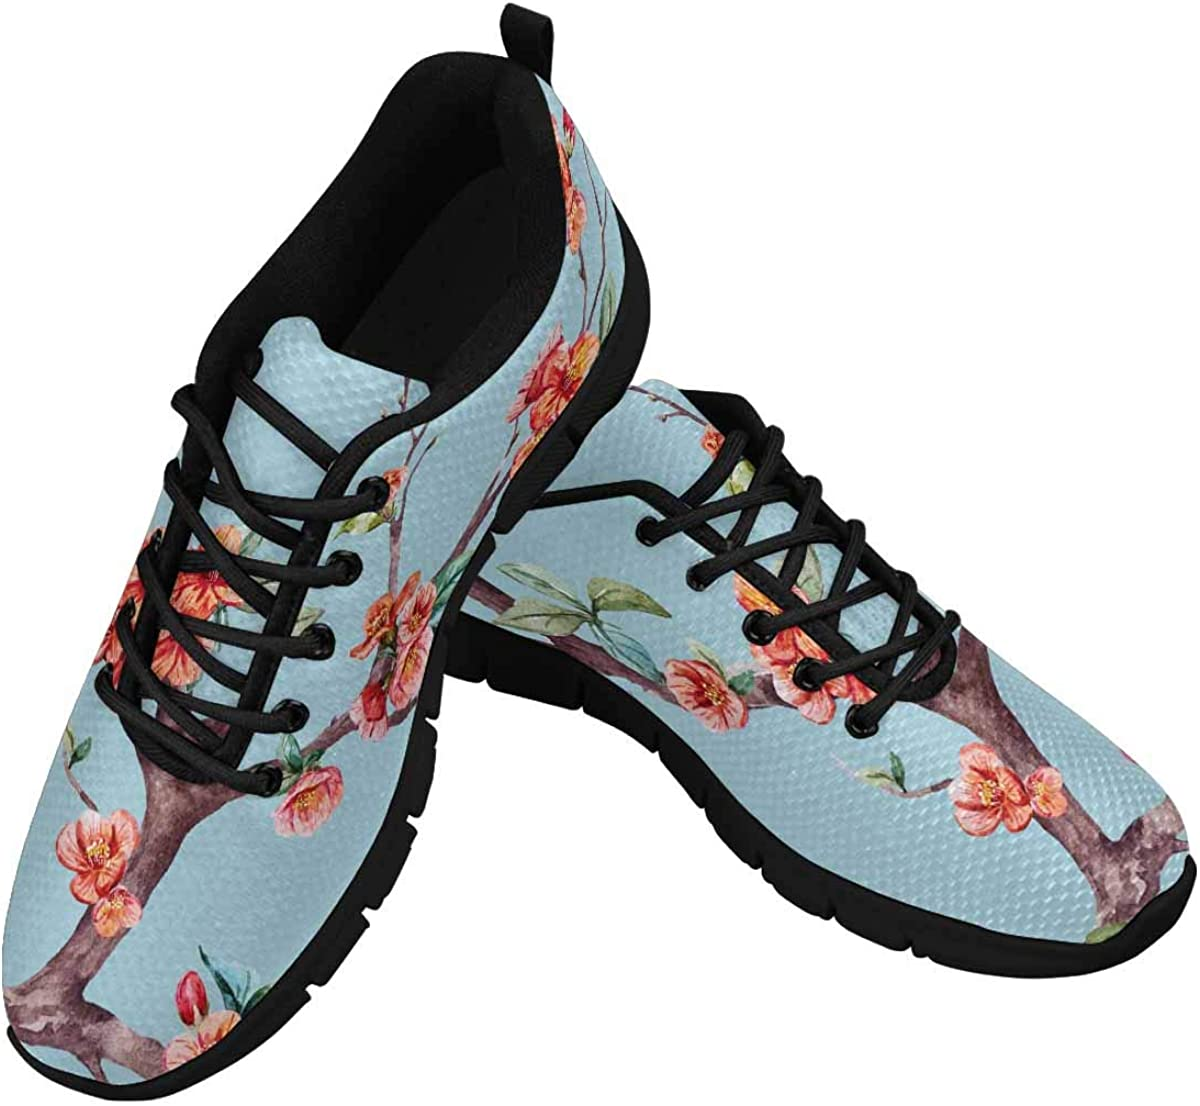 INTERESTPRINT Japanese Cherry Blossom Women's Running Shoes Mesh Breathable Sports Casual Shoes